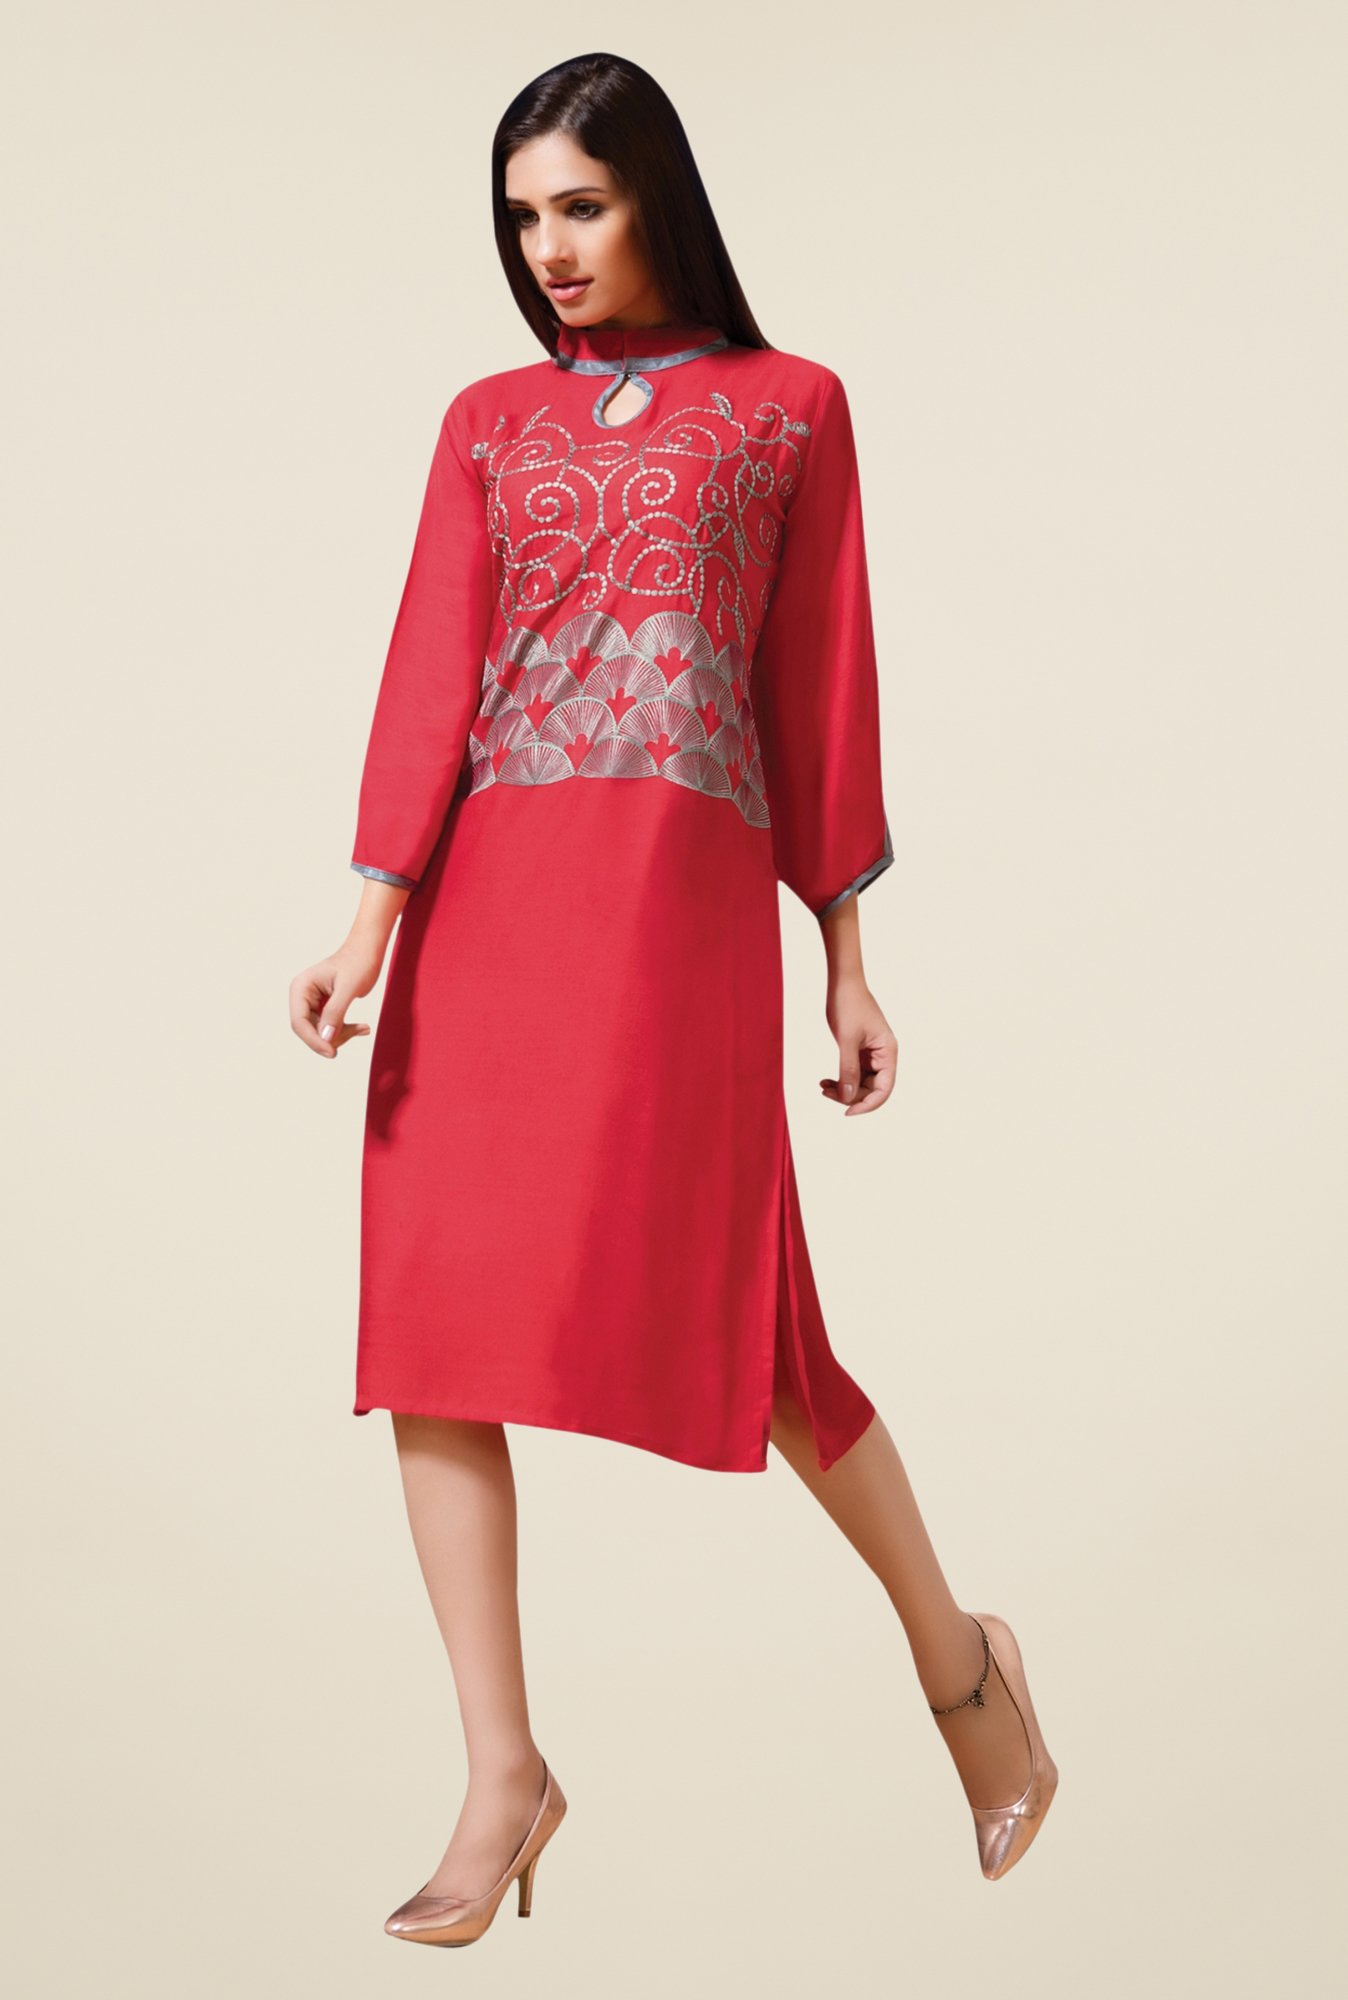 Triveni Red Embellished Kurta